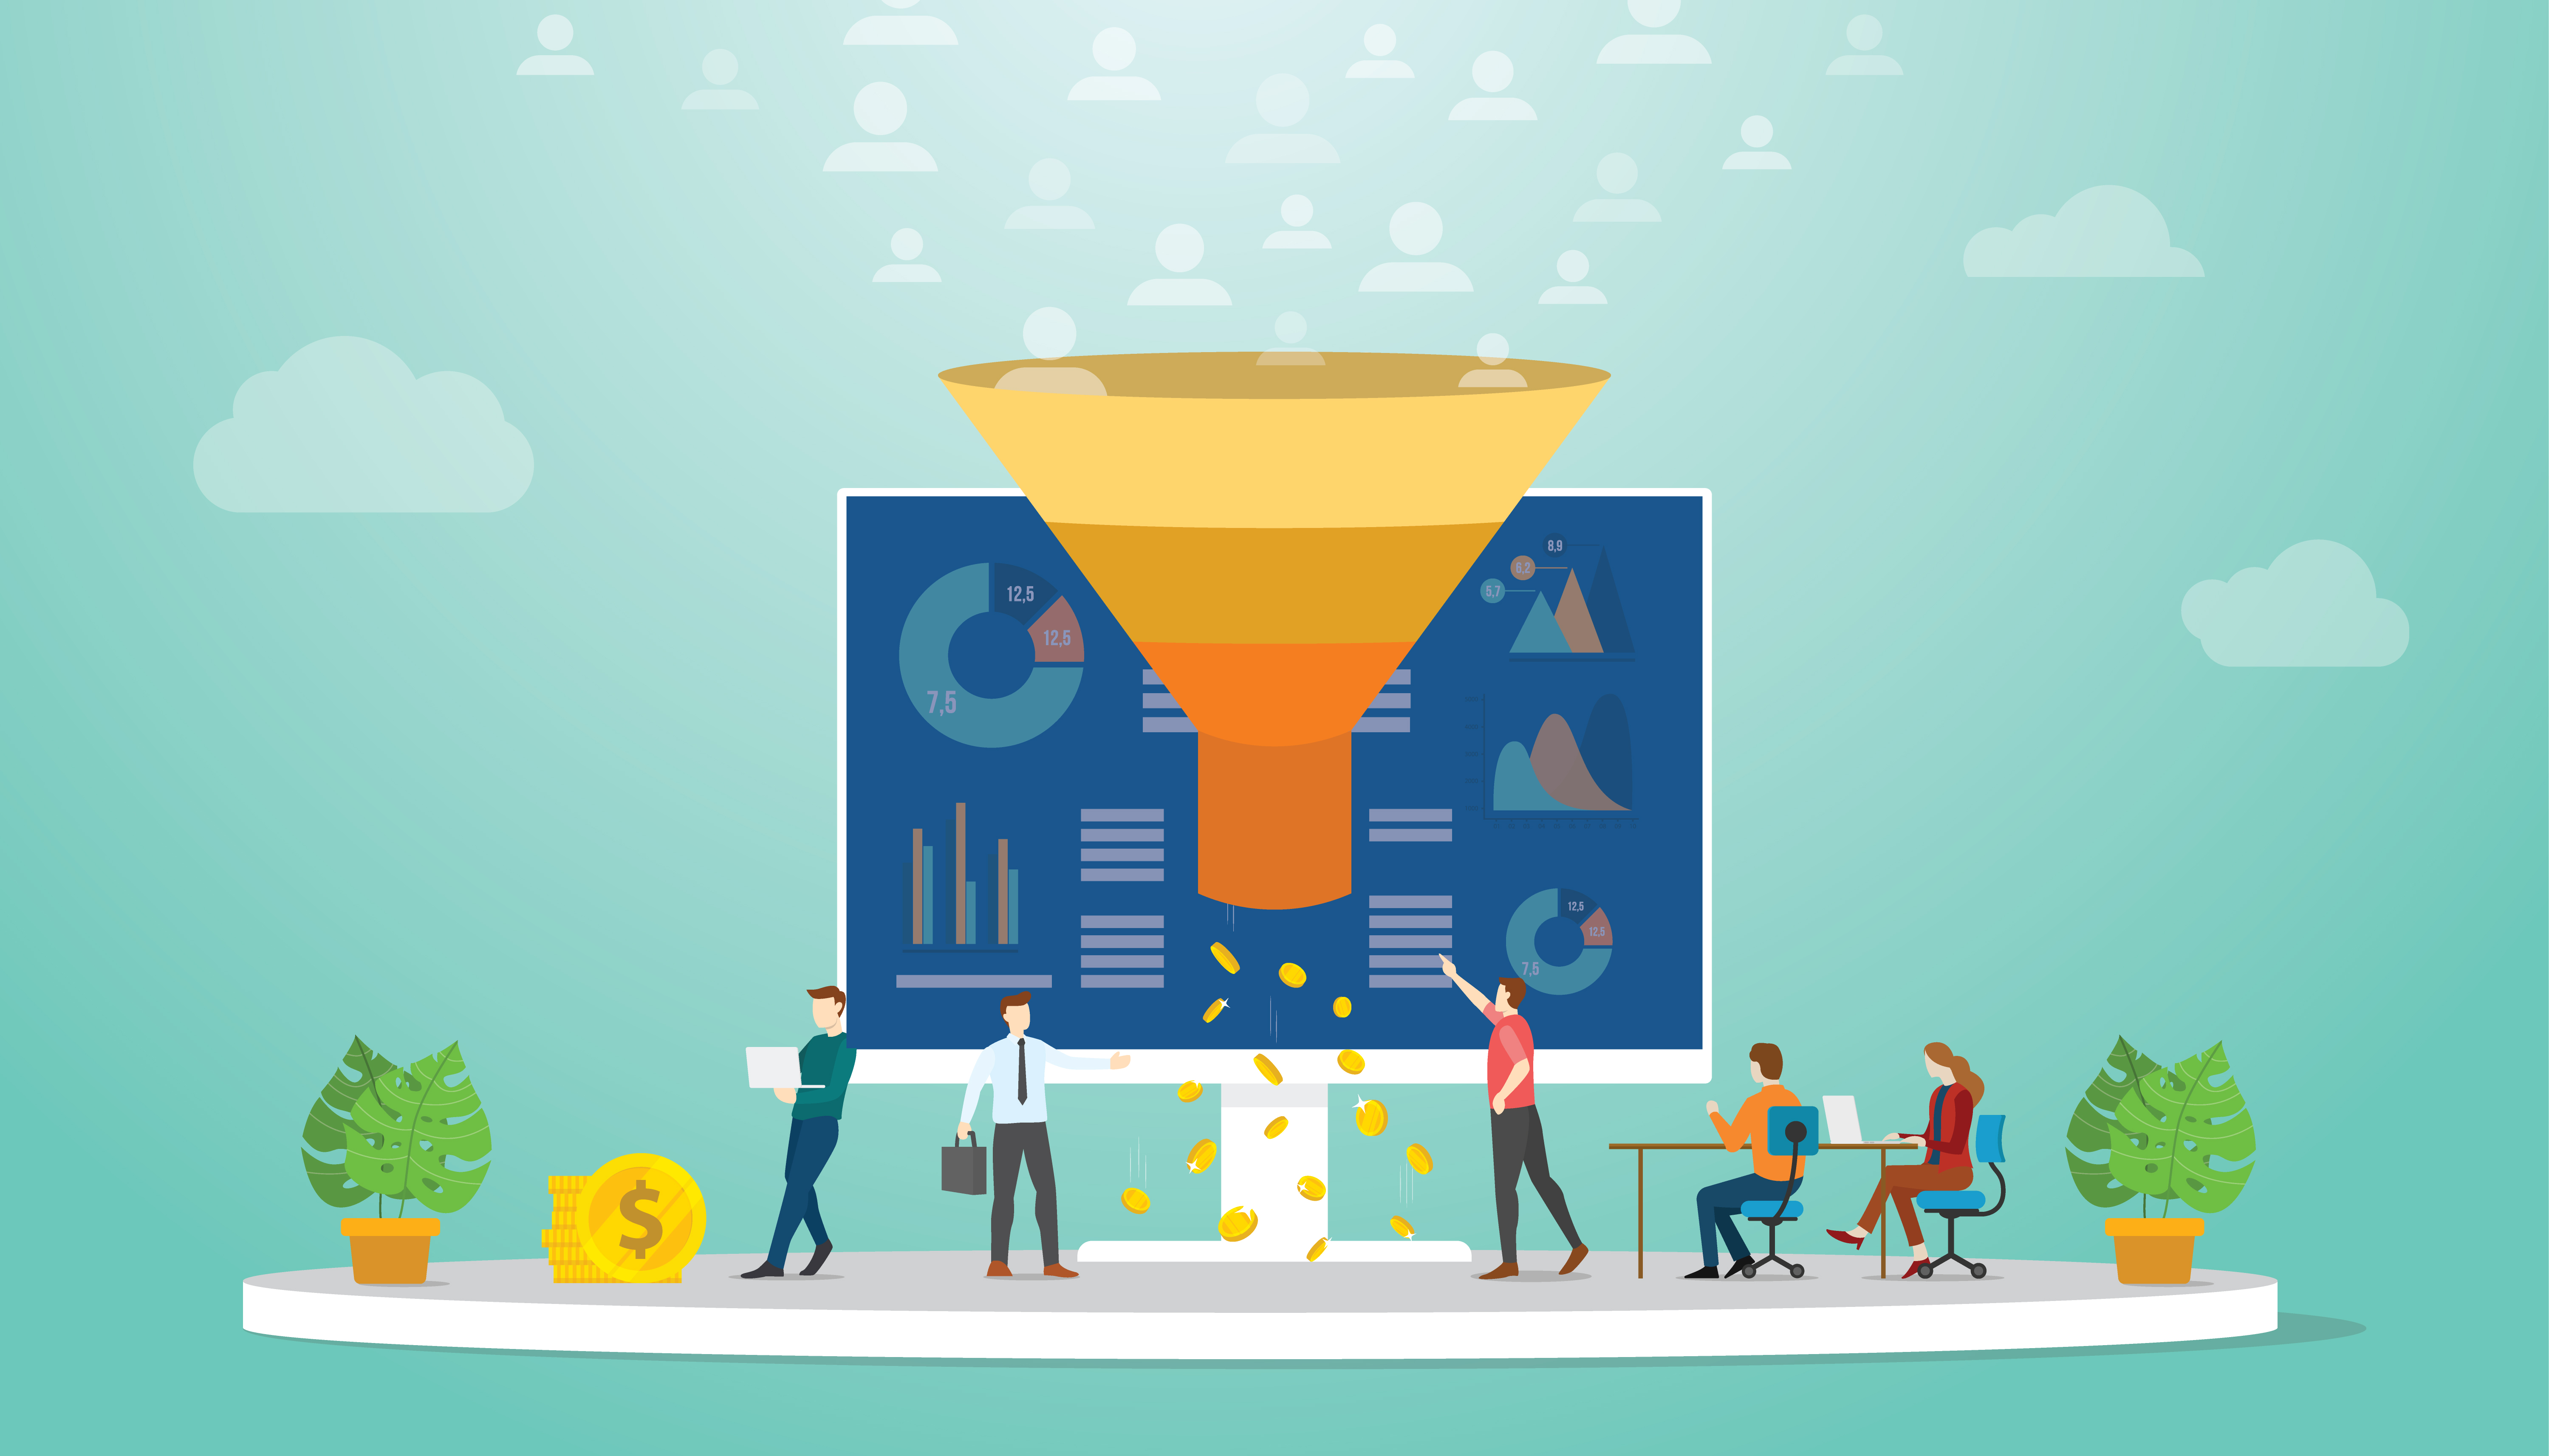 followers or users monetization team marketing strategy concept with modern flat style - vector illustration